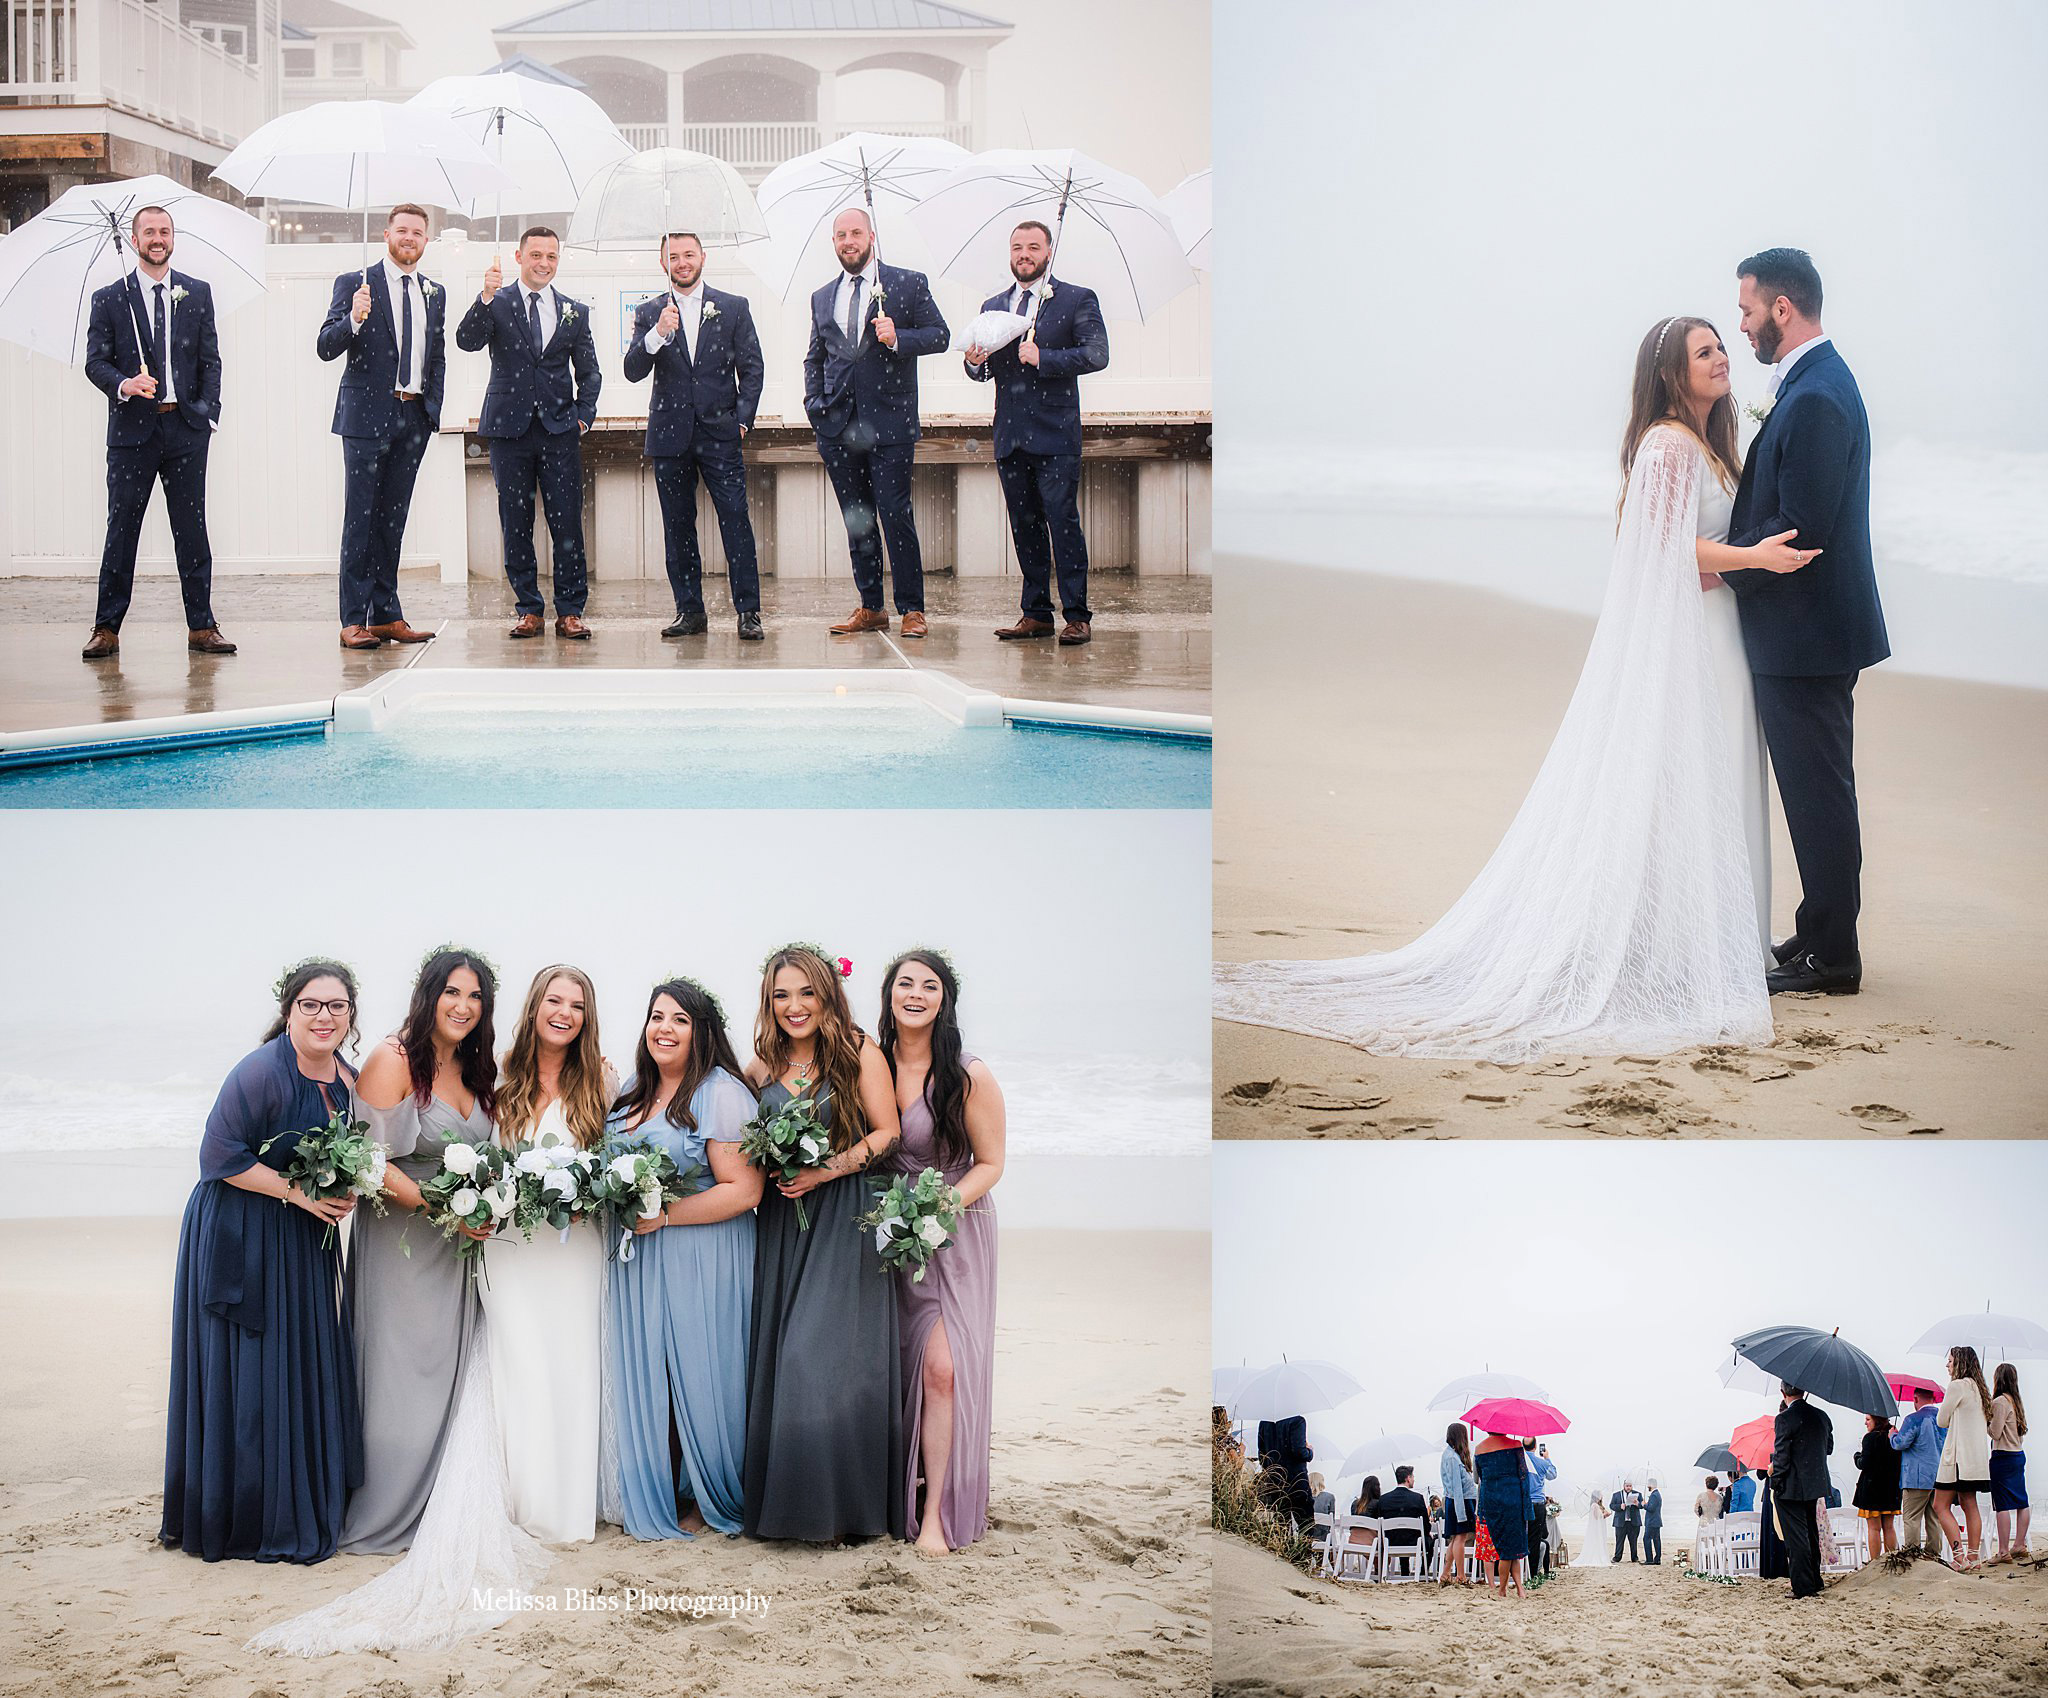 Over-the-Moon-beach-house-wedding-sandbrige-VA-melissa-bliss-photography.jpg